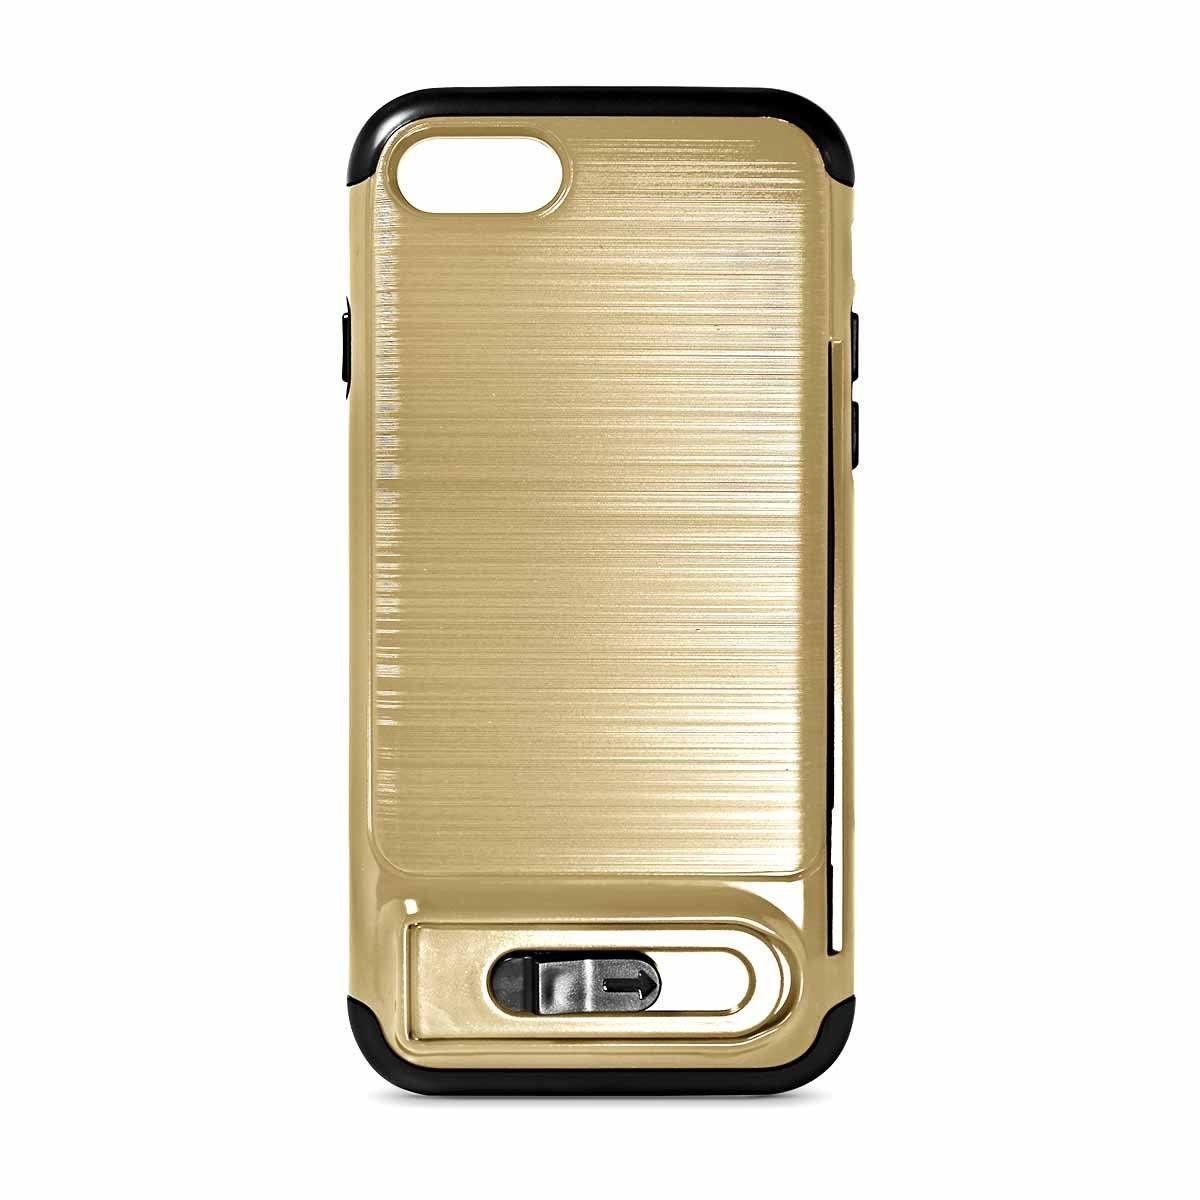 My Card Sliding Case for iPhone 7 /8 - Gold